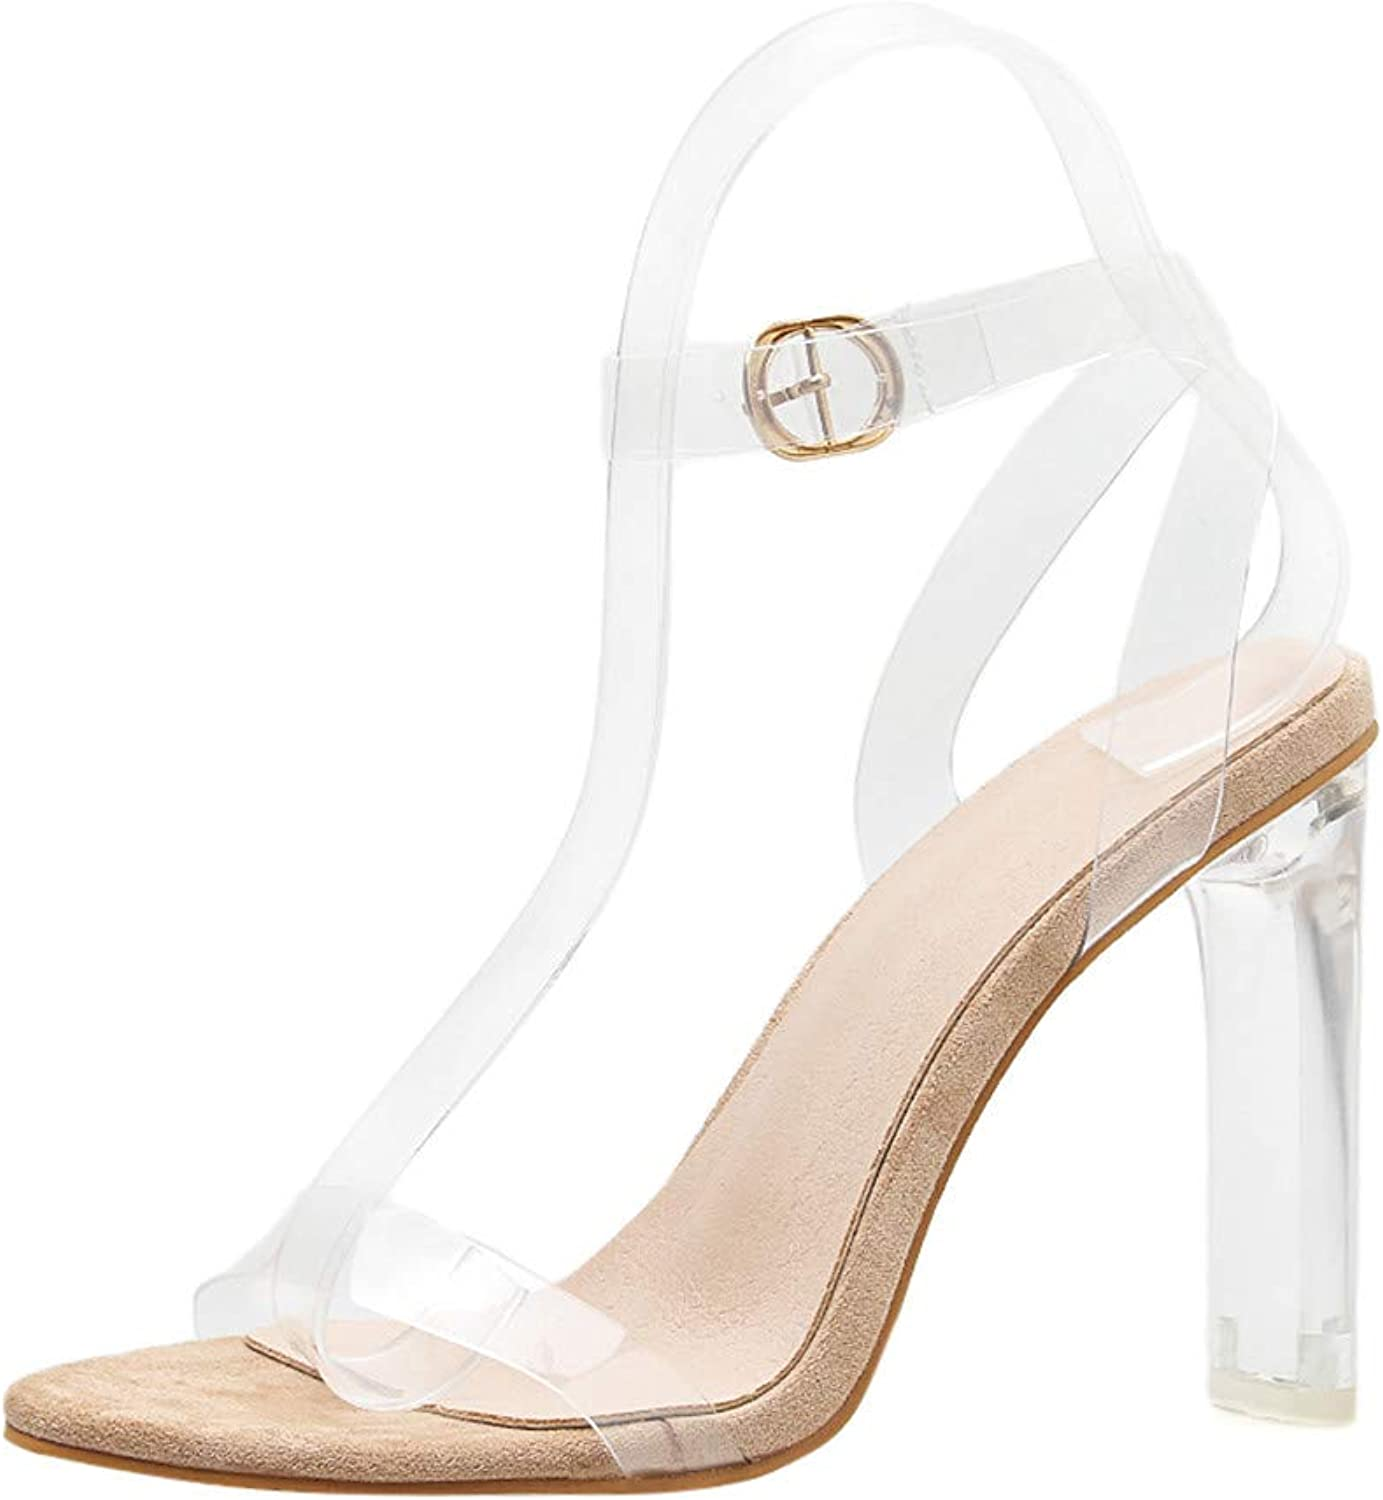 SUSENSTONE Women shoes High Heel Transparent High Heels Sandals